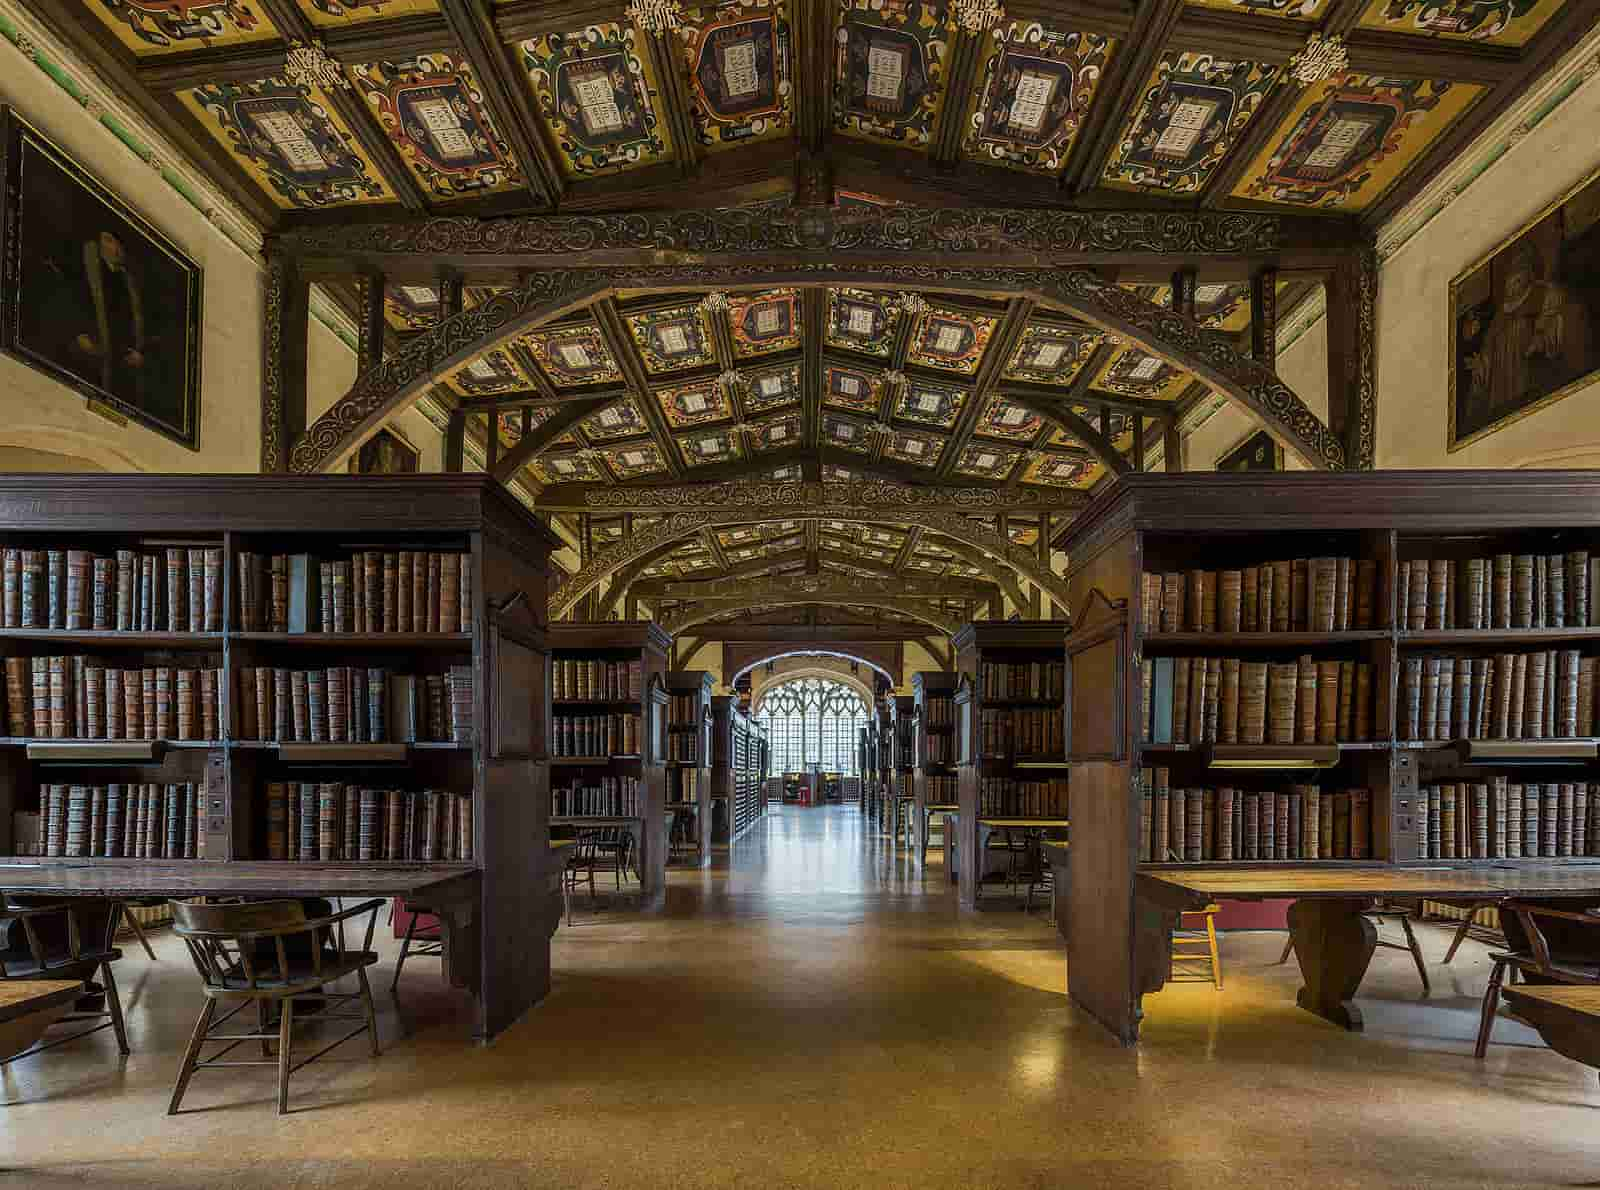 The Bodleian Library interior, in the Duke Humfrey's room, an extravagantly decorated study space.